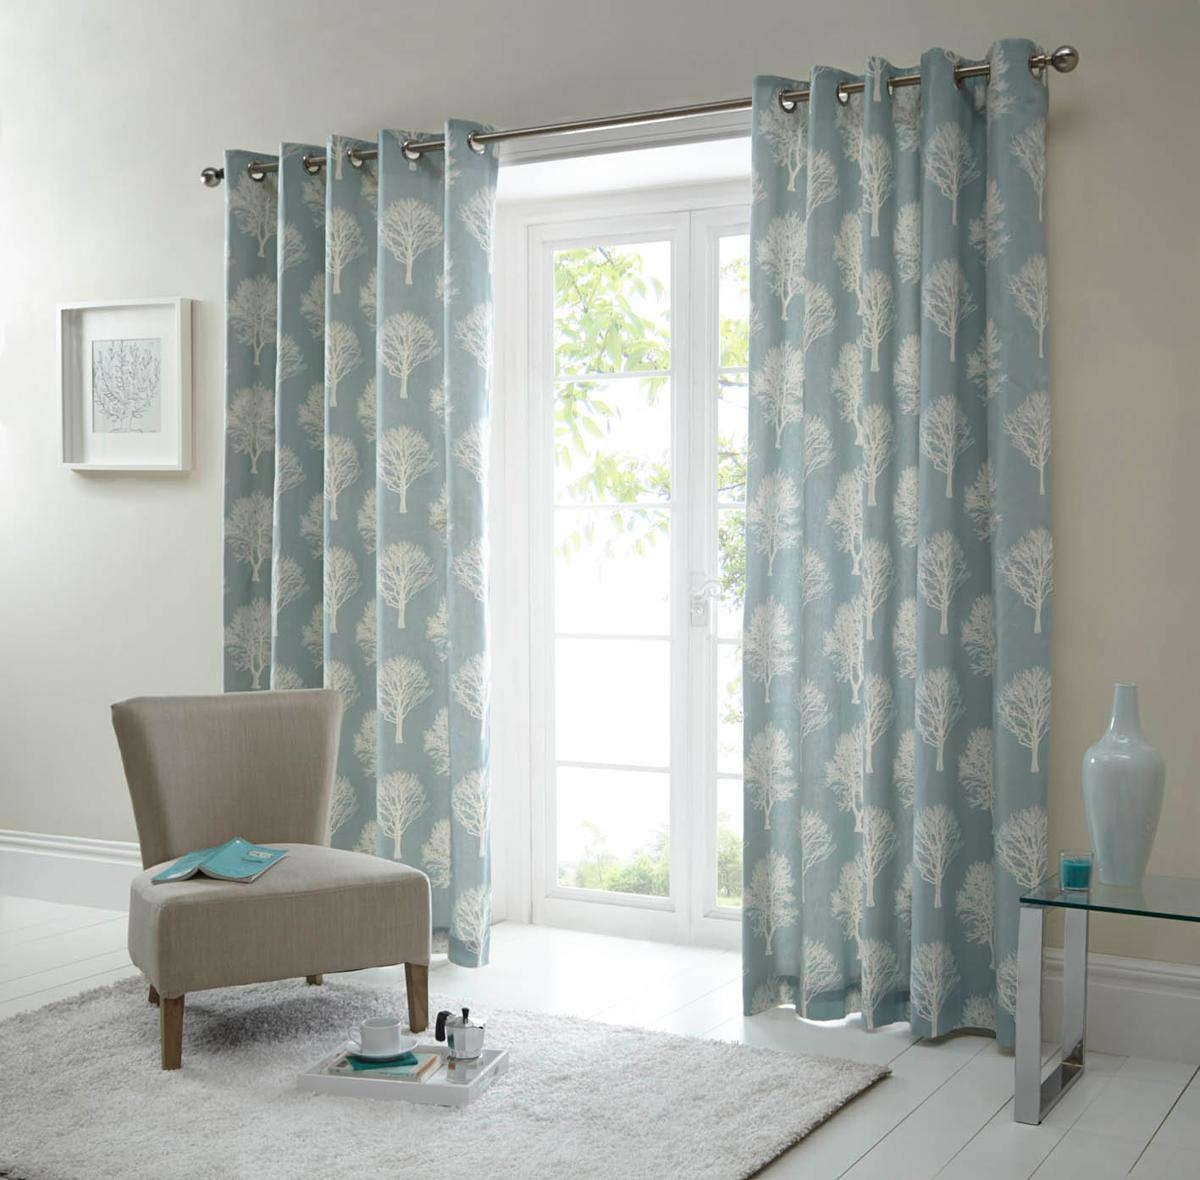 Woodland Ready Made Eyelet Curtains In Duck Egg Terrys Fabrics Intended For Cotton Eyelet Curtains (View 13 of 15)